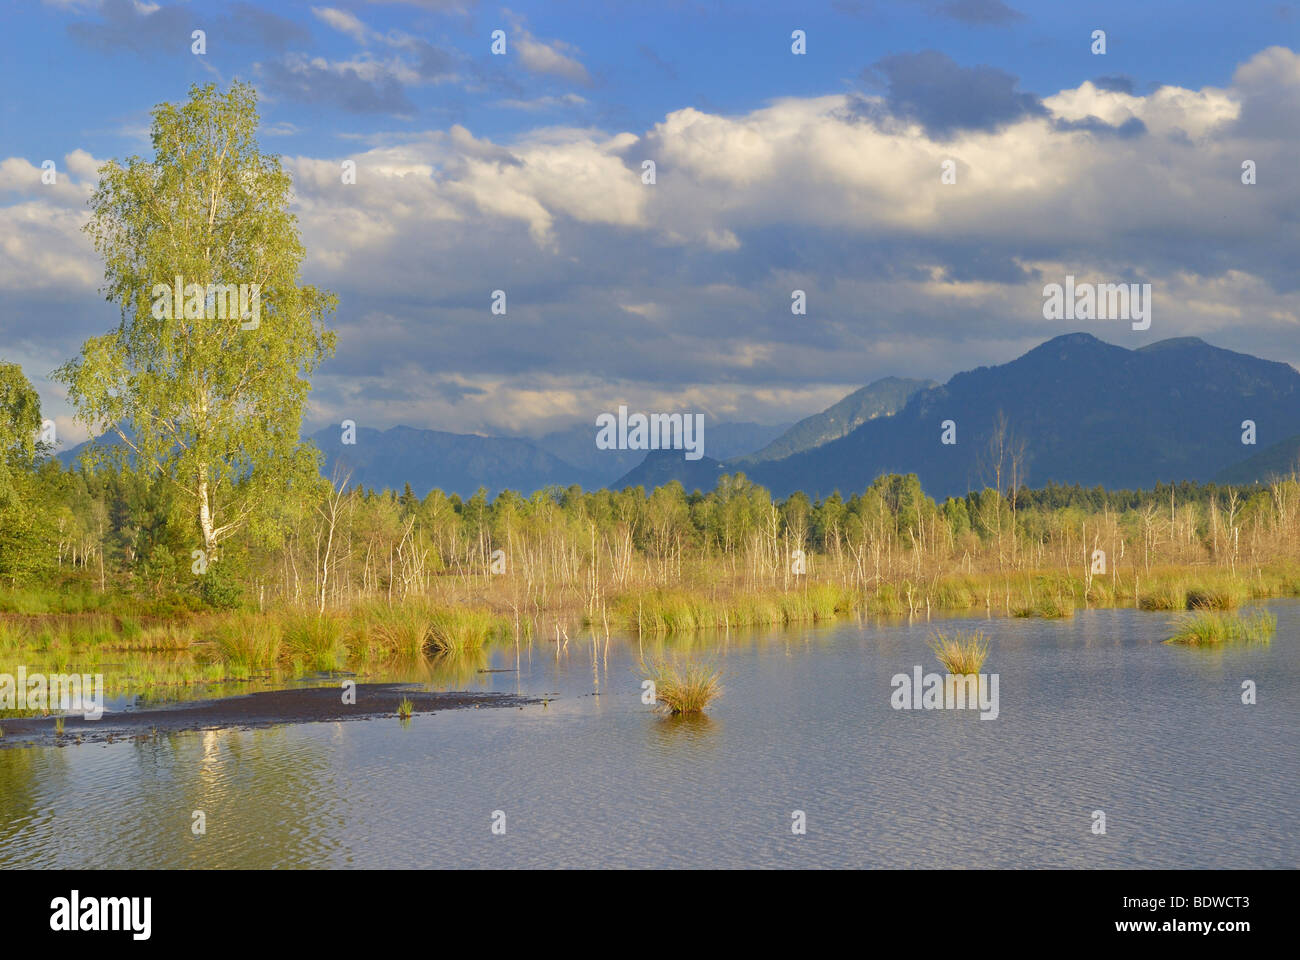 Moor pond with birches (Betula pubenscens) and mountains, foothills of the Alps, Grundbeckenmoor area, Nicklheim, Stock Photo